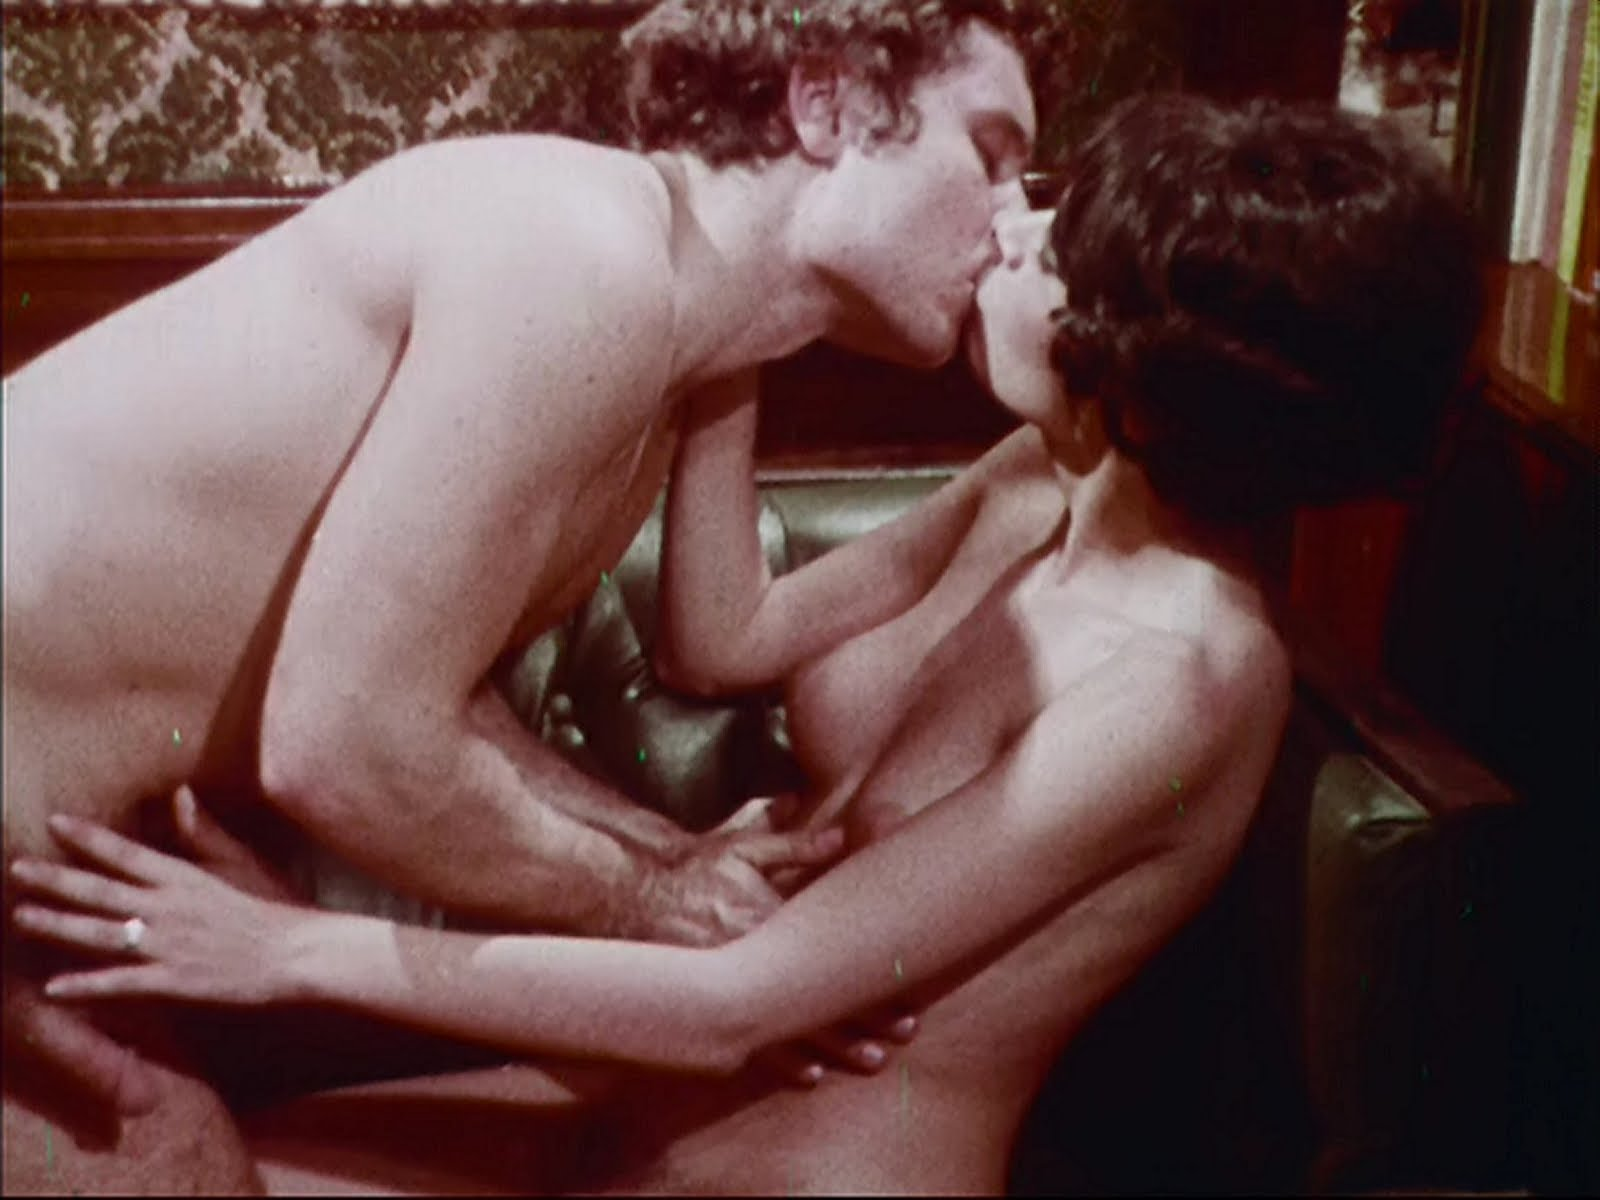 http://sinsofcinema.com/Images/Aphrodisiac/Aphrodisiac%20The%20Sexual%20Secret%20of%20Marijuana%20DVD.jpg